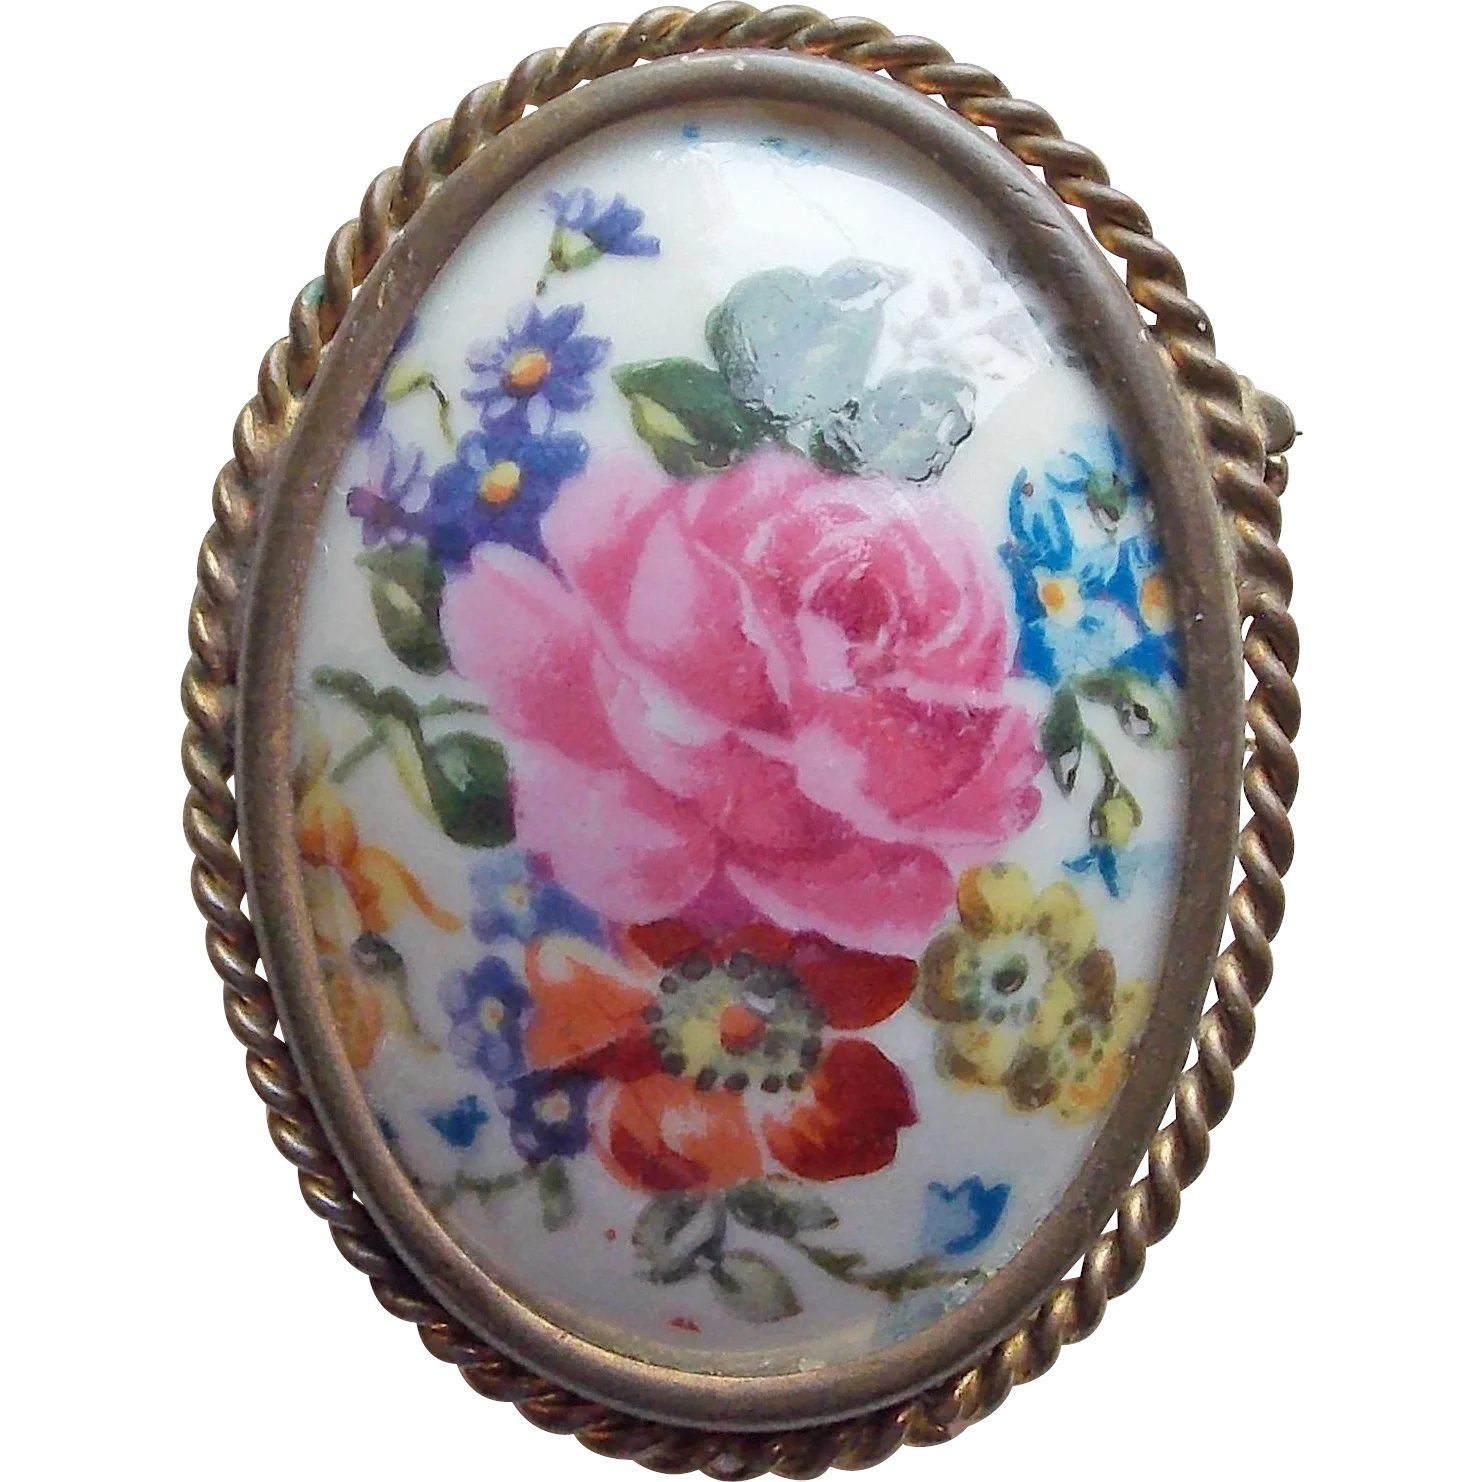 Tiffany & Co. Box Limoges France Villandry Porcelain Round ... |Limoges Jewelry